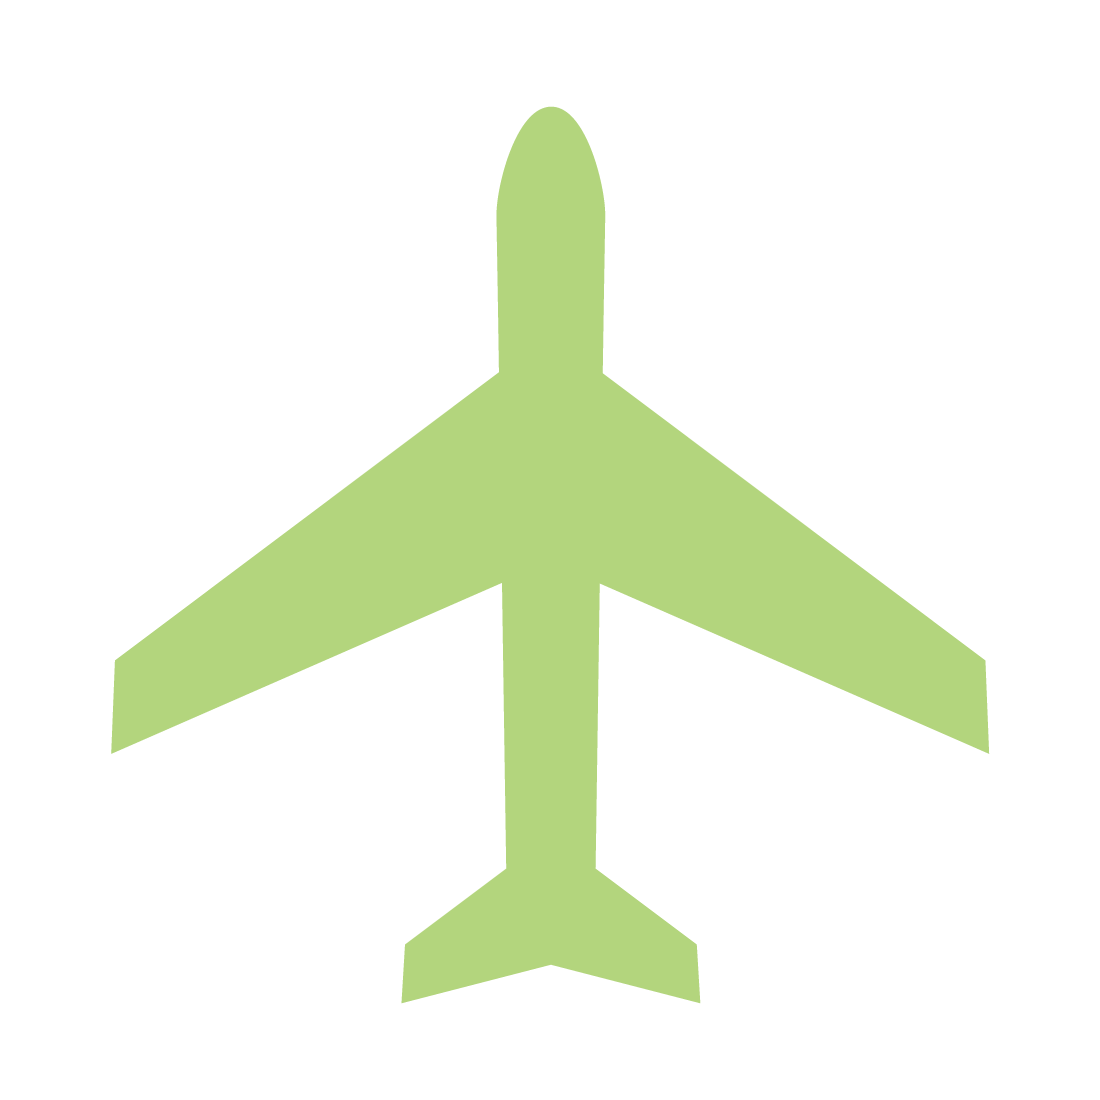 Social-Giphys_Airplane-Icon-Tropical.png